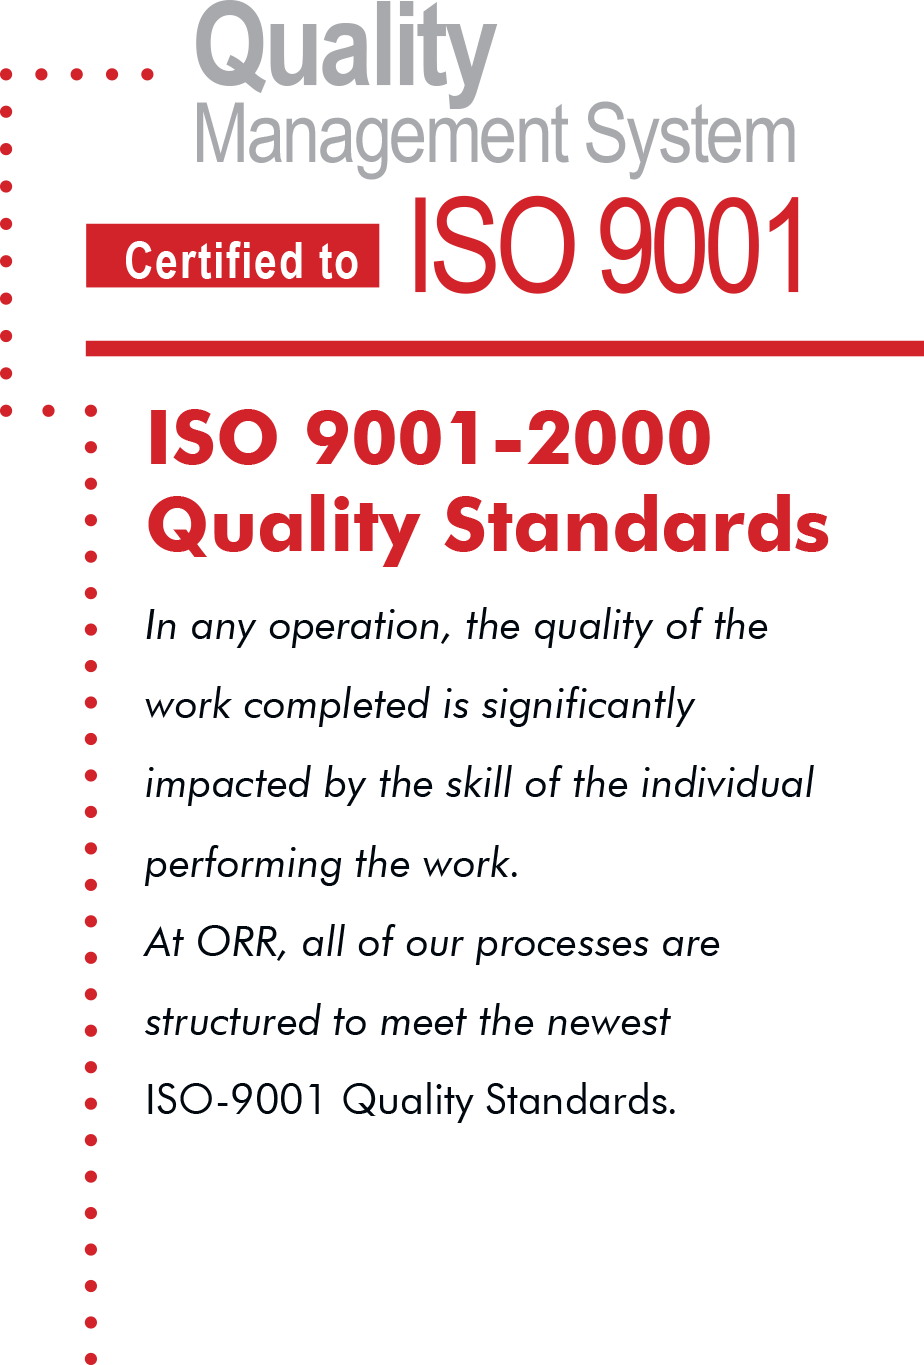 ISO 9001 image_300dpi.png